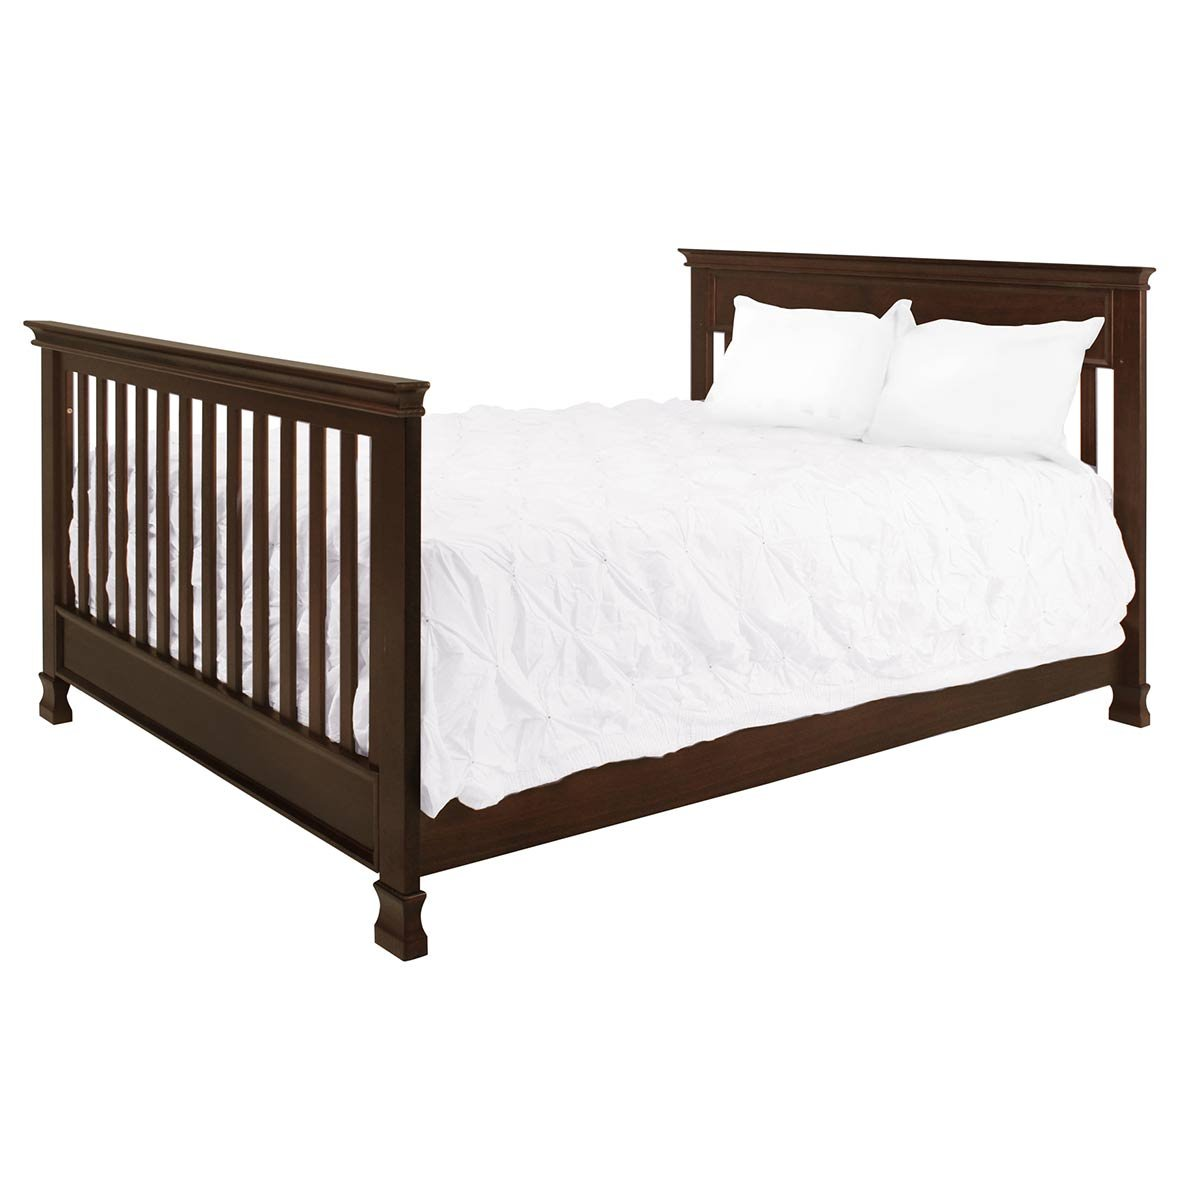 Full Size Conversion Kit Bed Rails for Million Dollar Baby Ashbury, Foothill & Louis Cribs - Espresso by Grow-with-Me Crib Conversion Kits (Image #5)